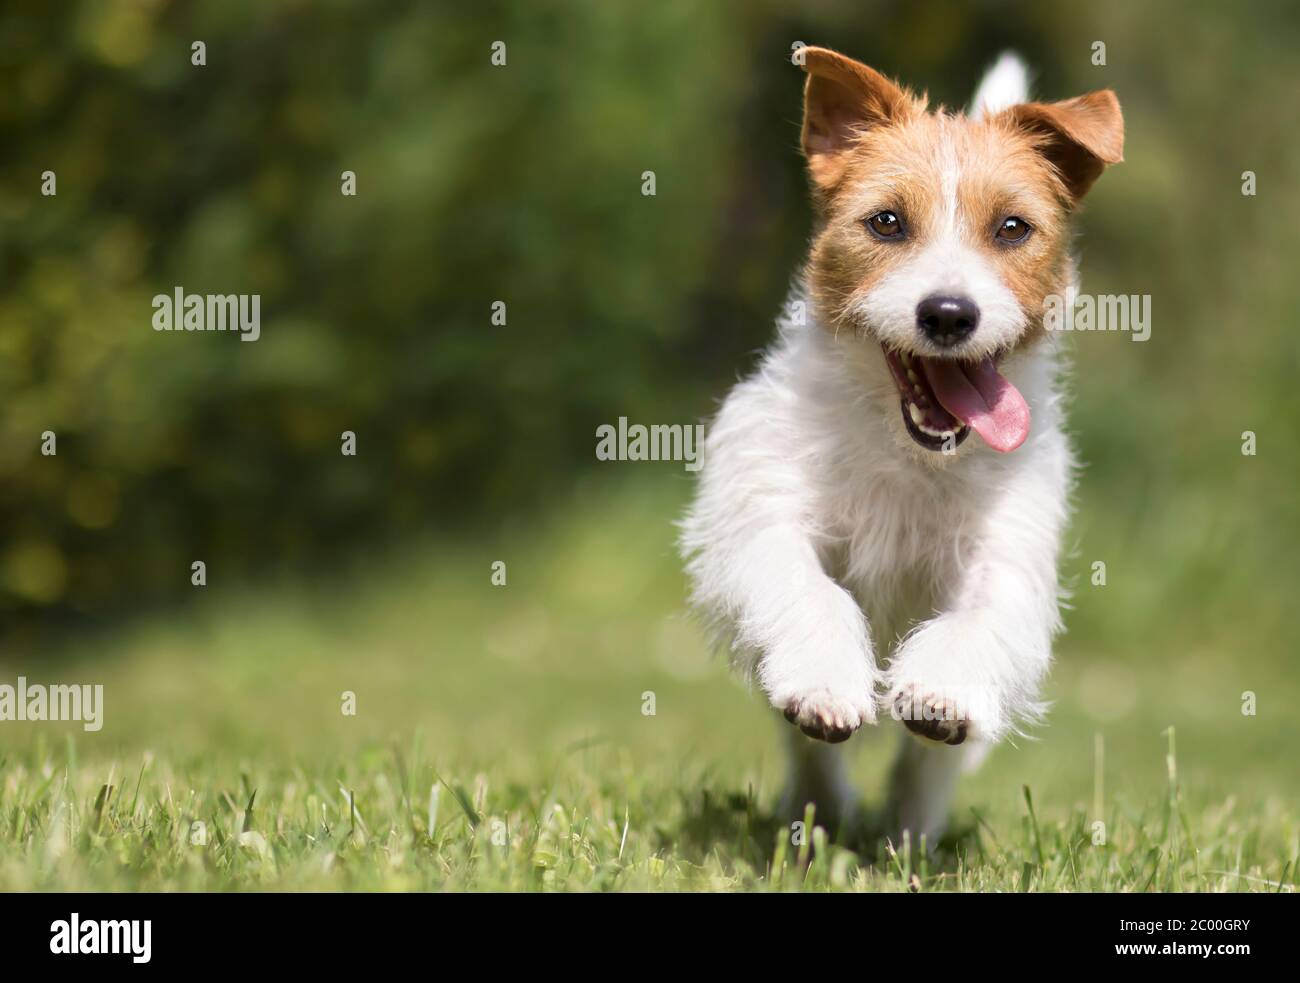 Funny Playful Happy Crazy Jack Russell Terrier Smiling Cute Pet Dog Puppy Running And Jumping In The Grass In Summer Stock Photo Alamy